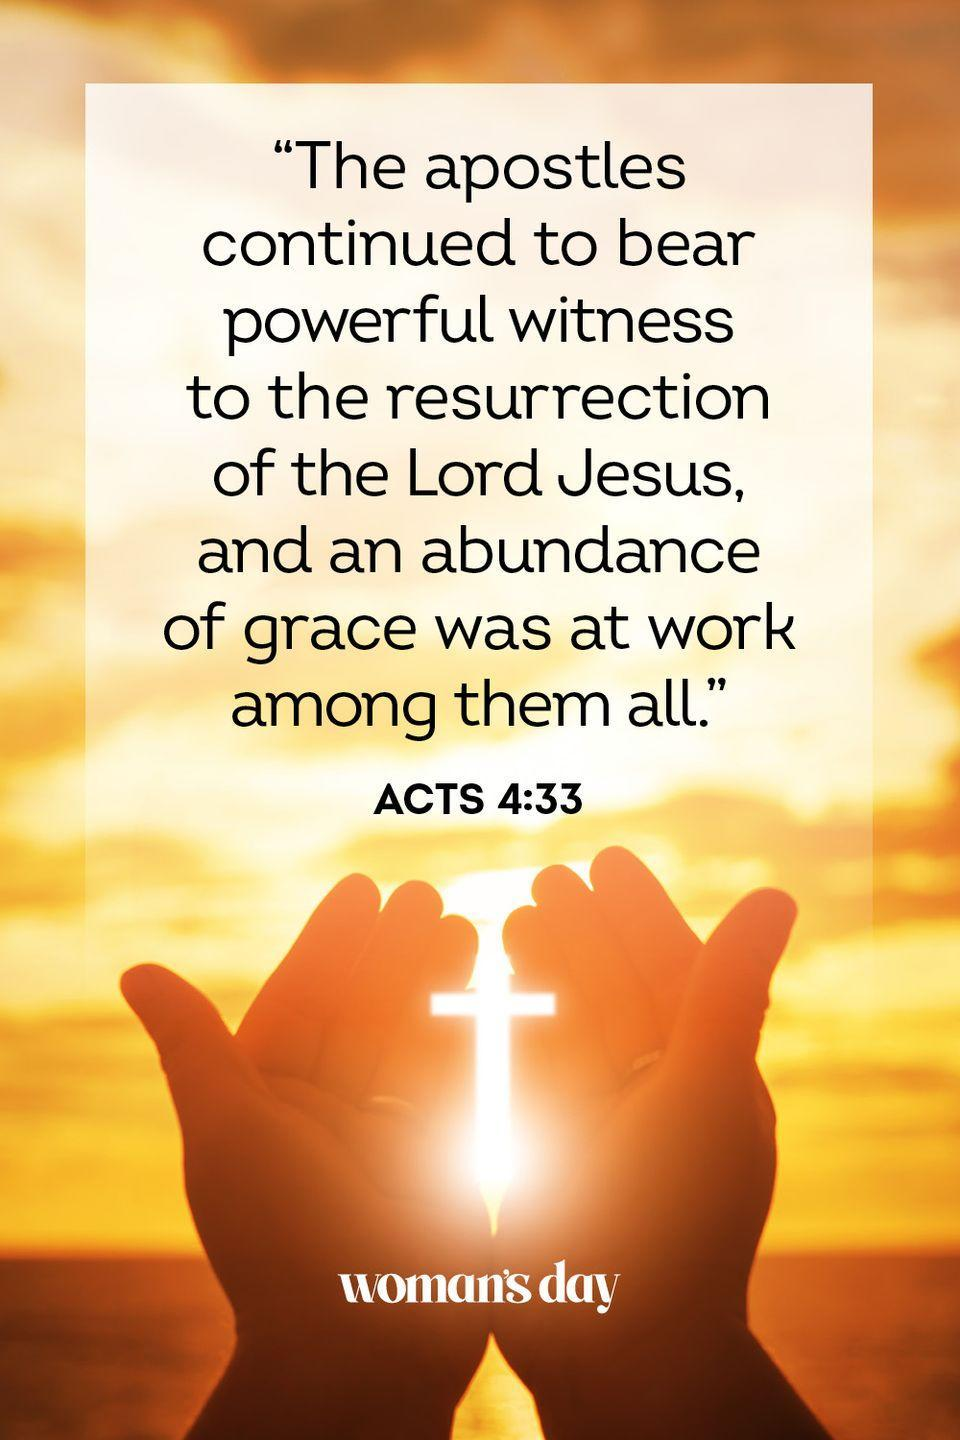 "<p>""The apostles continued to bear powerful witness to the resurrection of the Lord Jesus, and an abundance of grace was at work among them all."" — Acts 4:33 </p>"